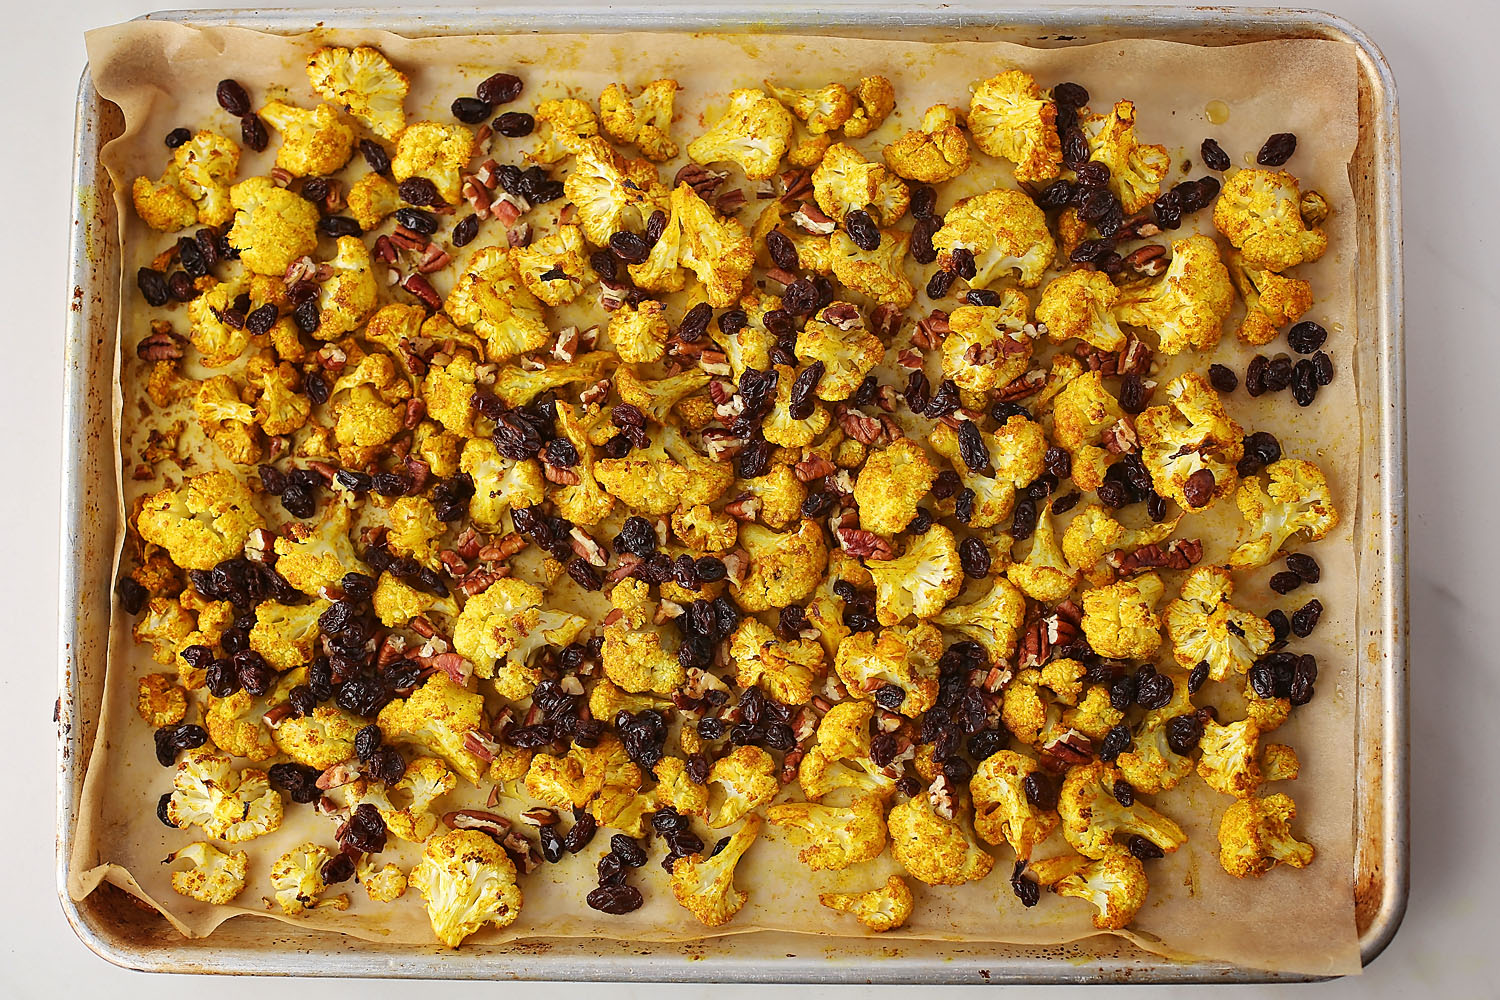 sheet pan with curry roasted cauliflower with raisins and pecans